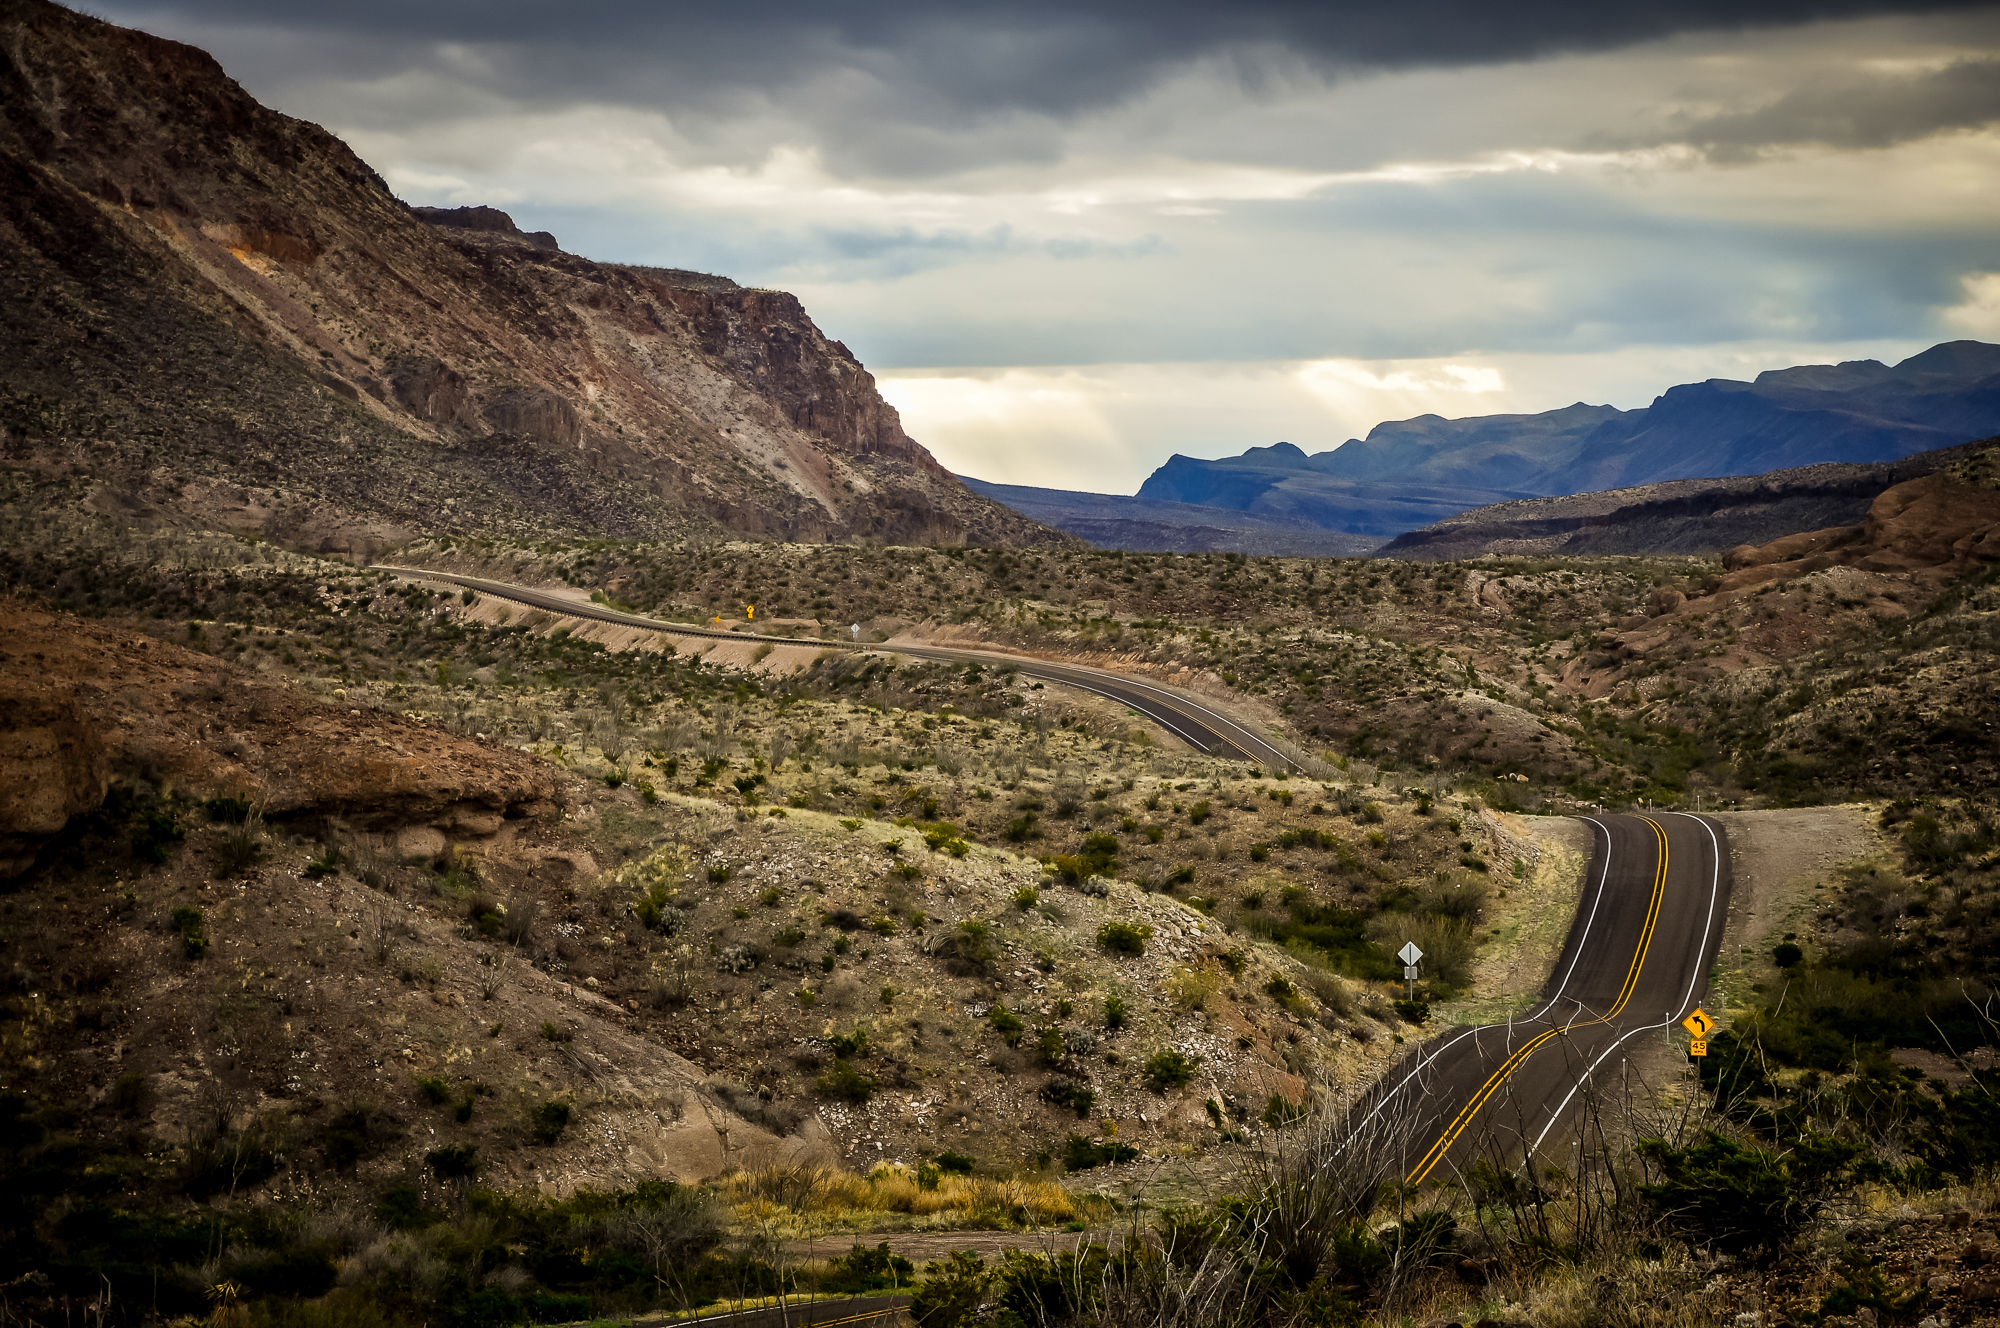 River Road - Big Bend Ranch State Park, USA